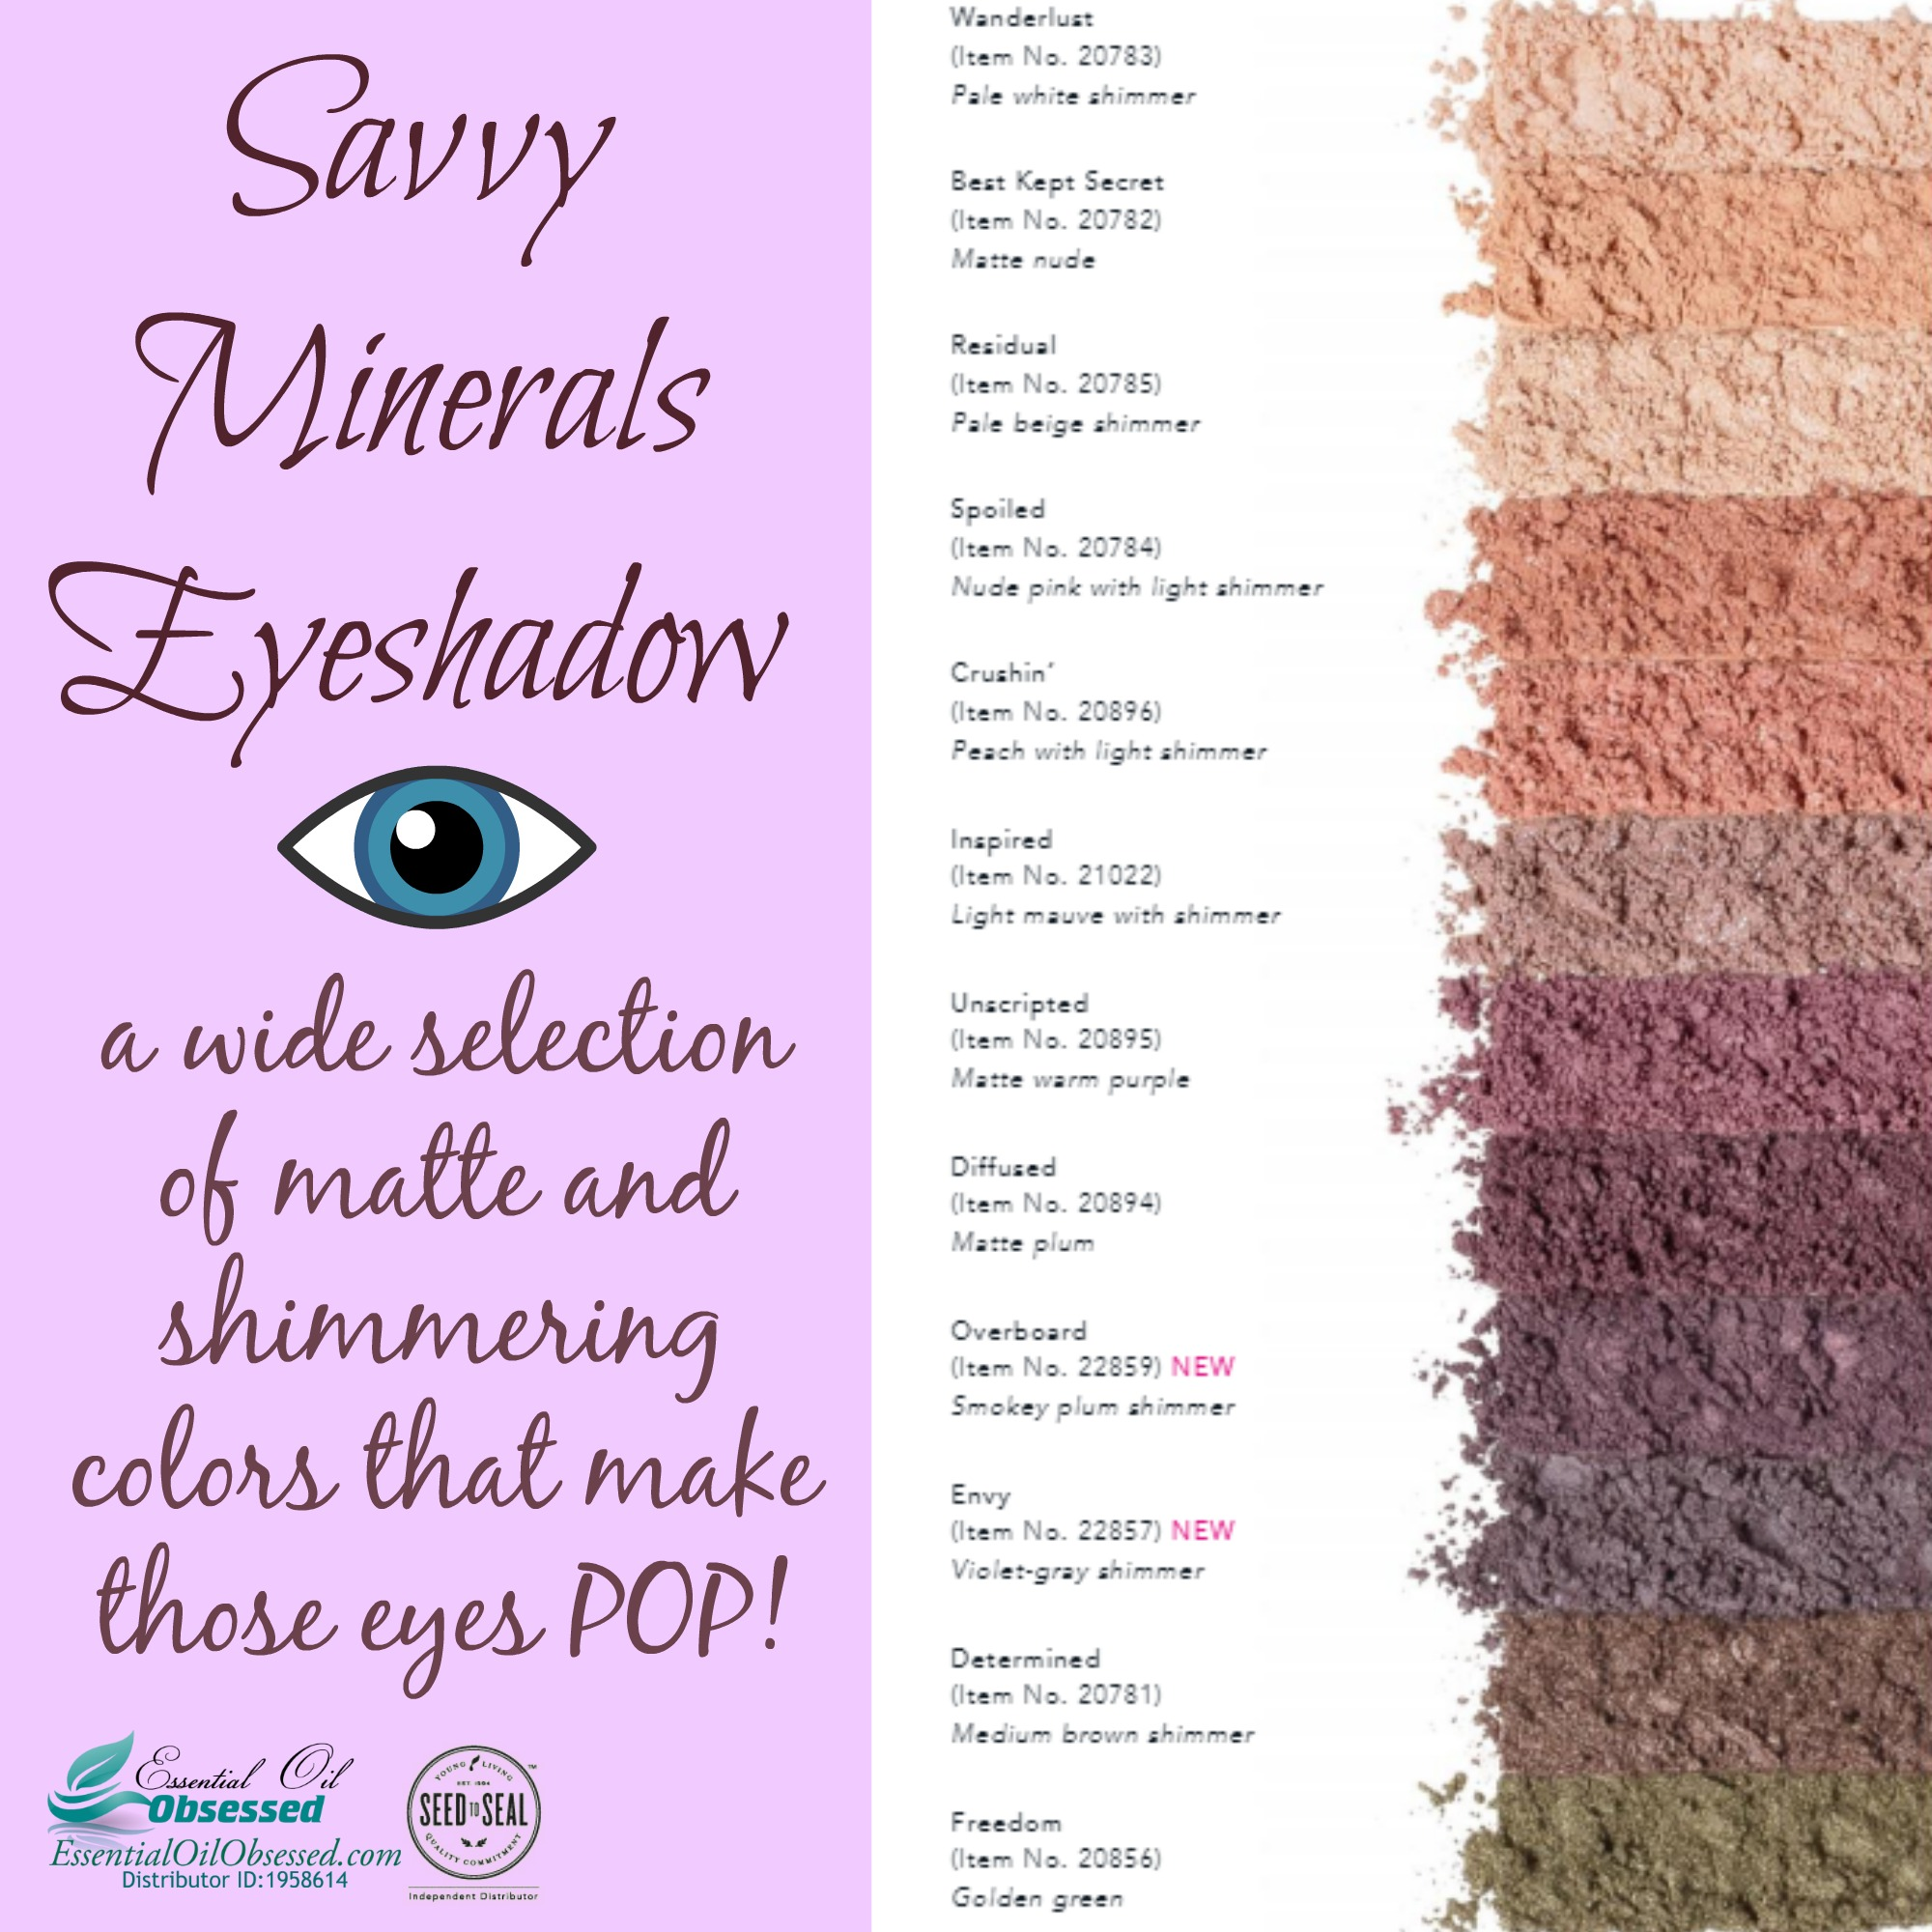 Savvy Minerals cosmetic colors for 2018!